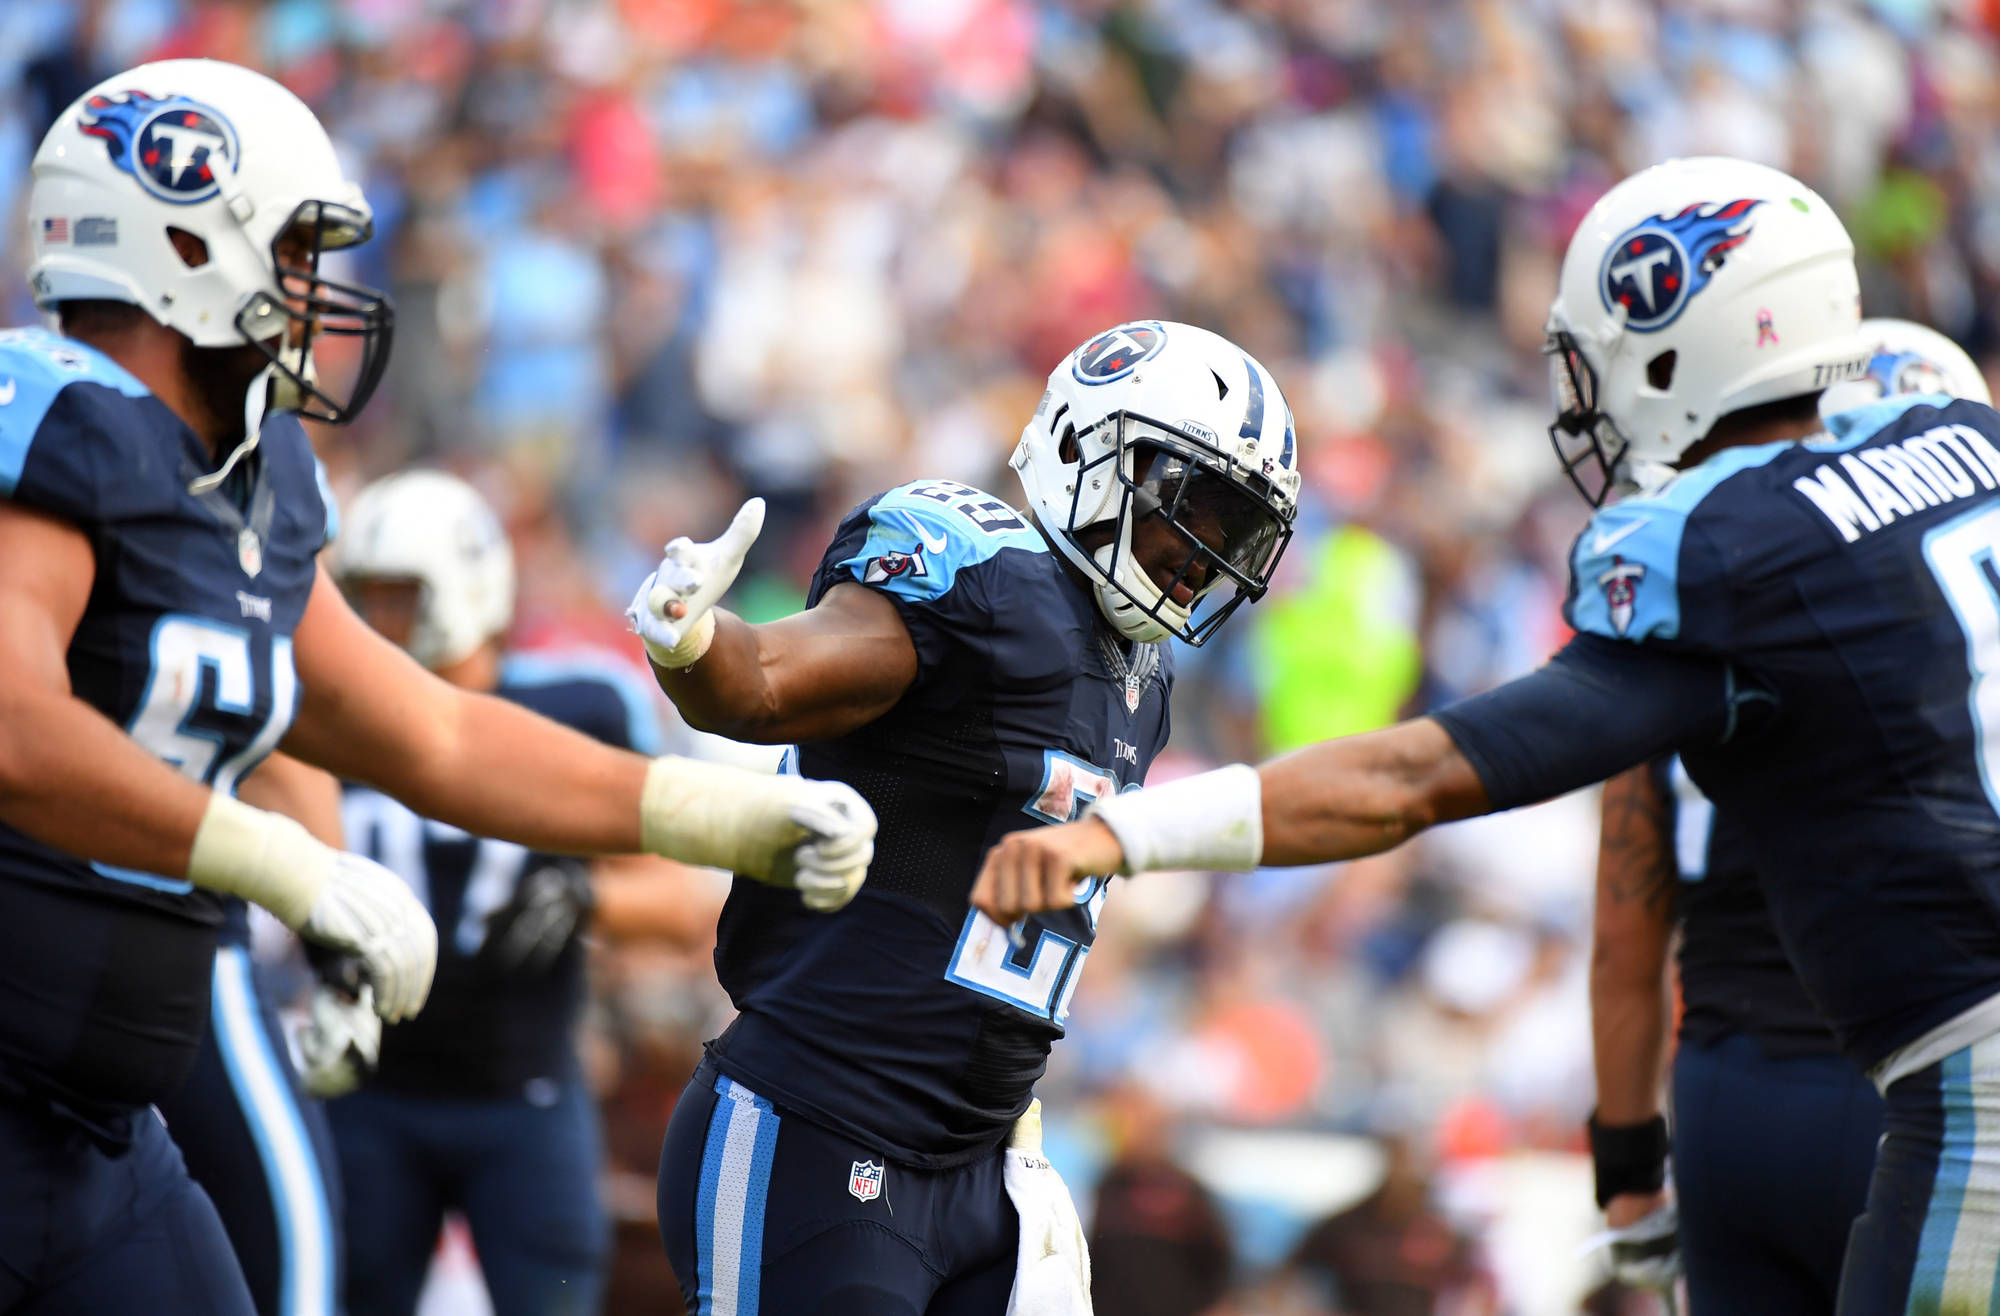 Game Preview: Titans (3-3) Look to Win Third Straight and Get over .500 as they host Colts (2-4)